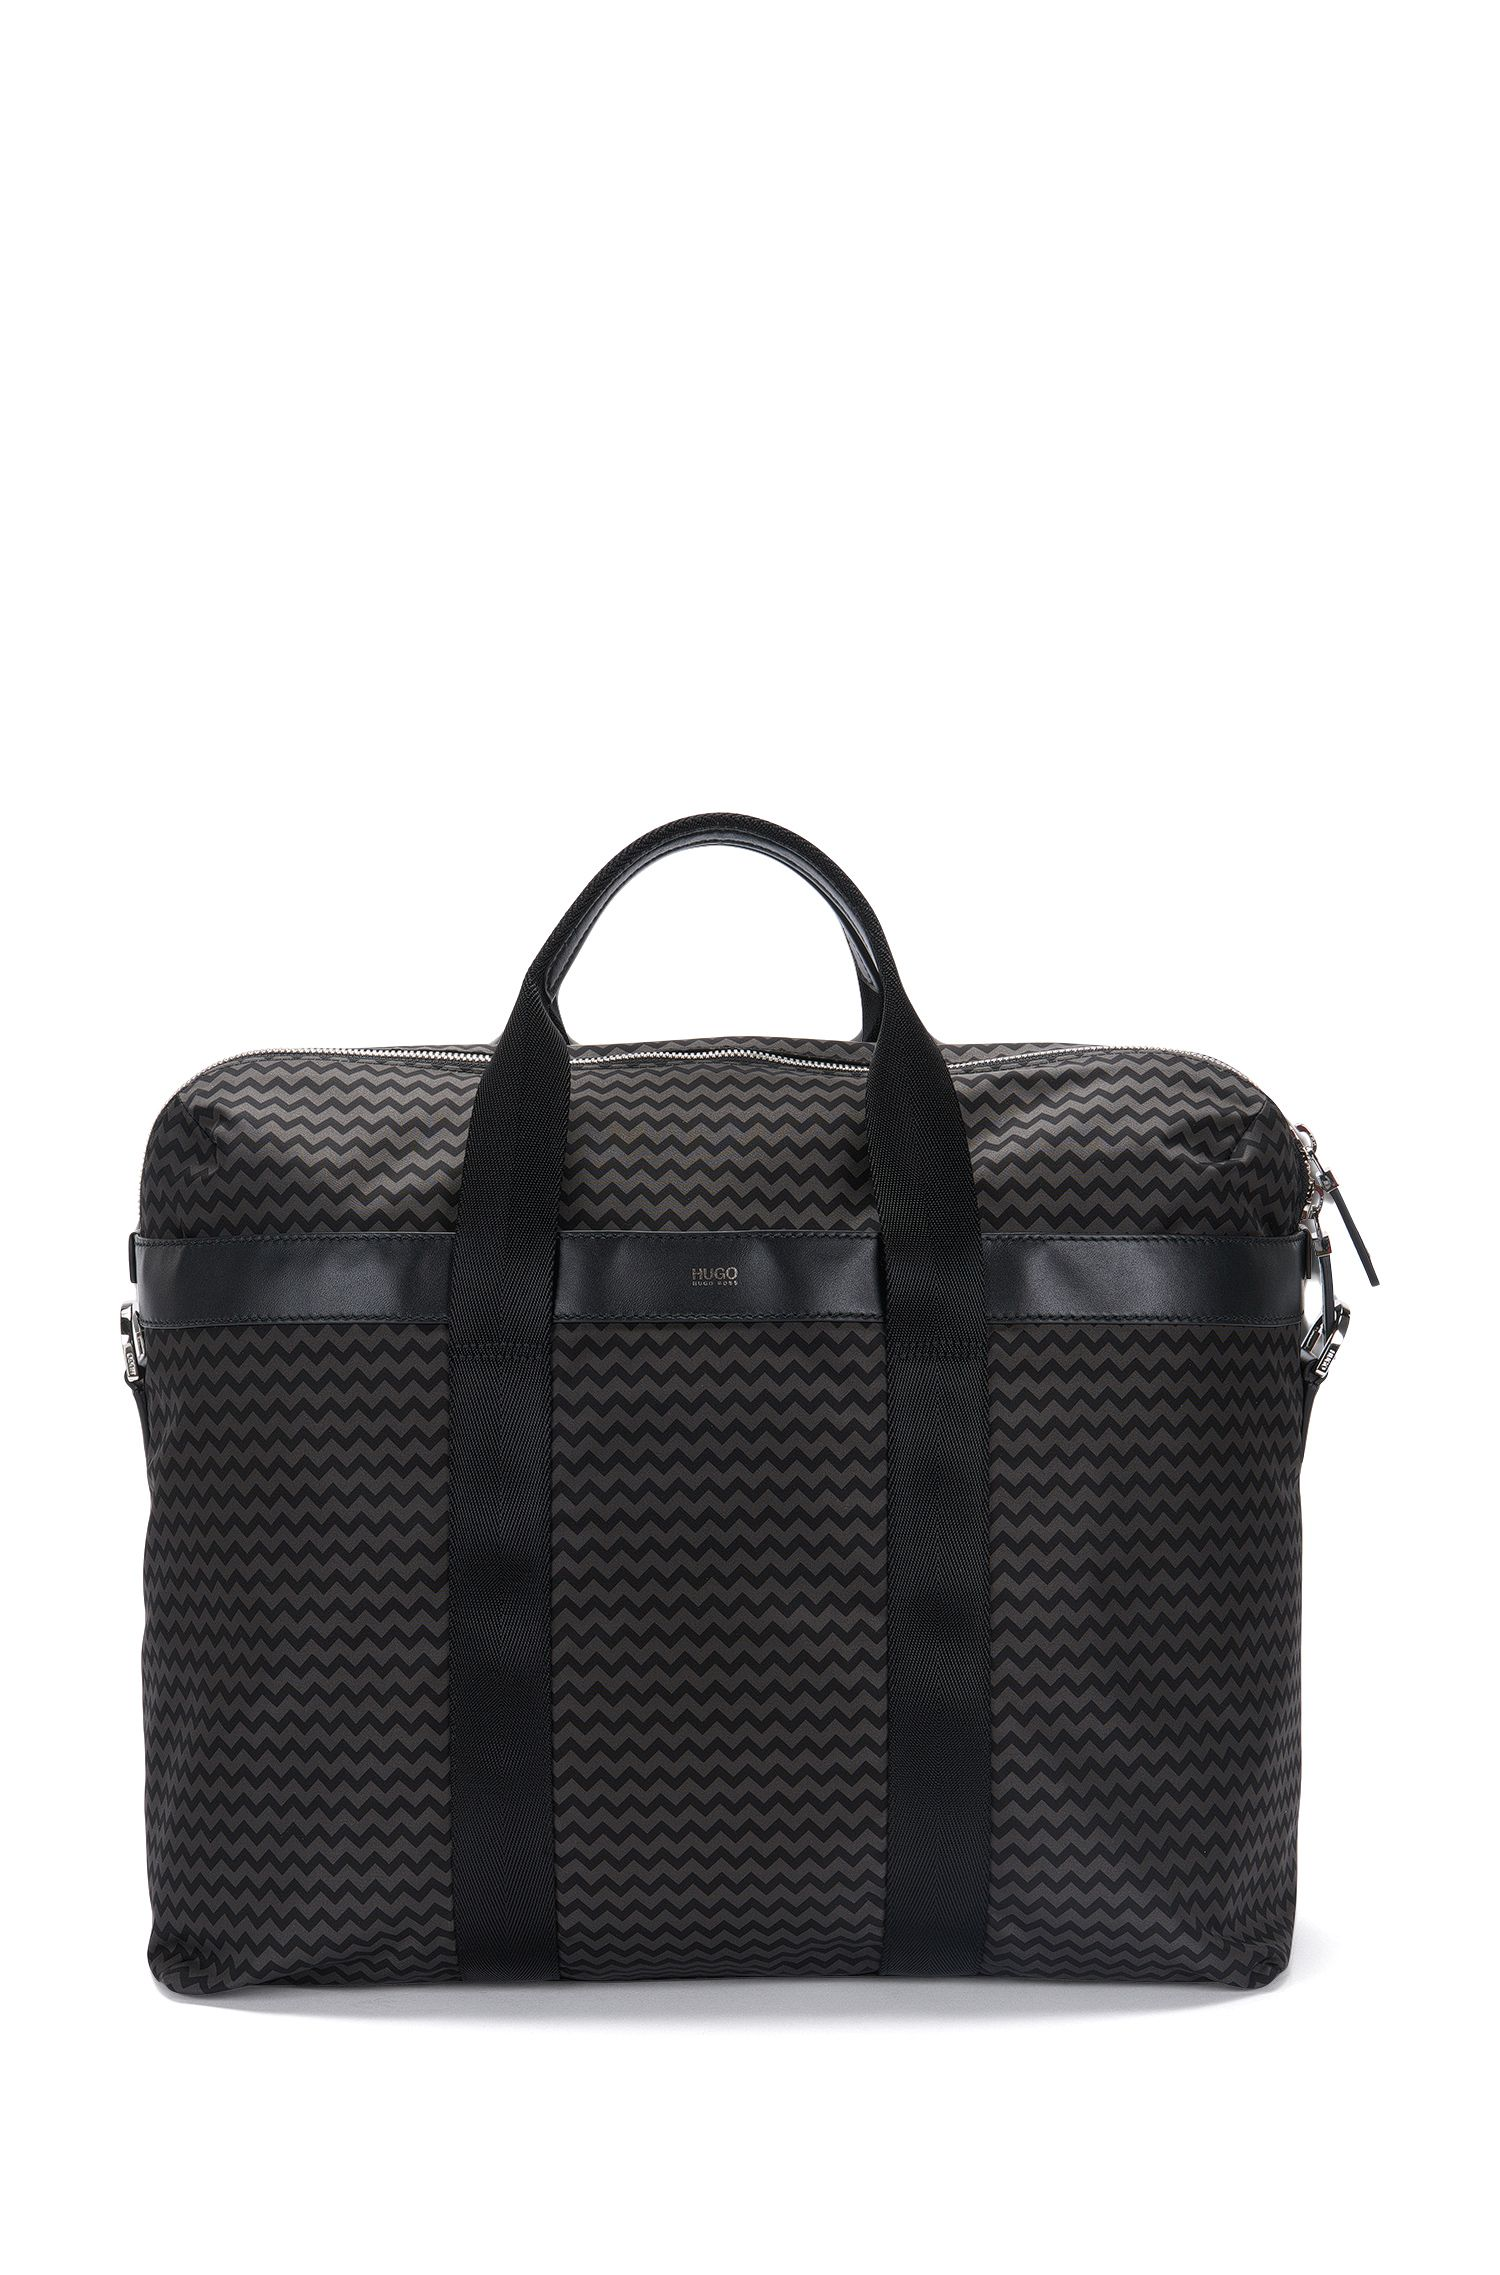 Borsa weekender con dettagli in pelle e stampa Chevron: 'Digital L_H hold P'